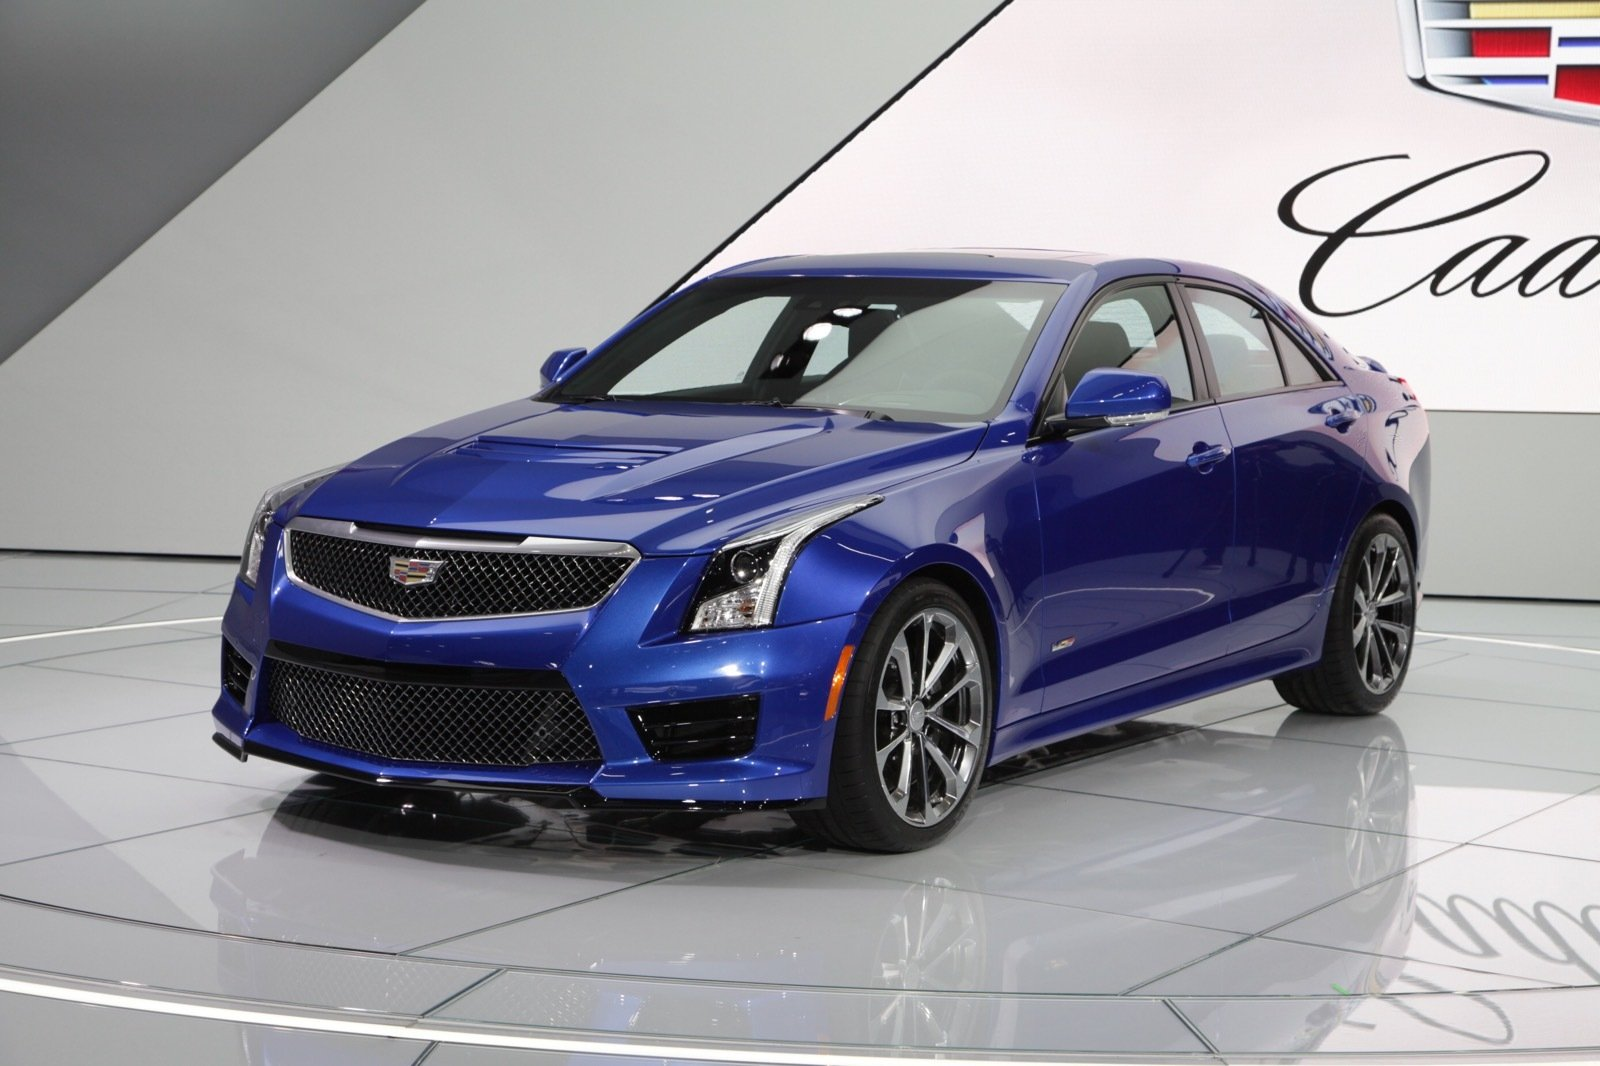 2016 cadillac ats v sedan picture 612822 car review top speed. Black Bedroom Furniture Sets. Home Design Ideas